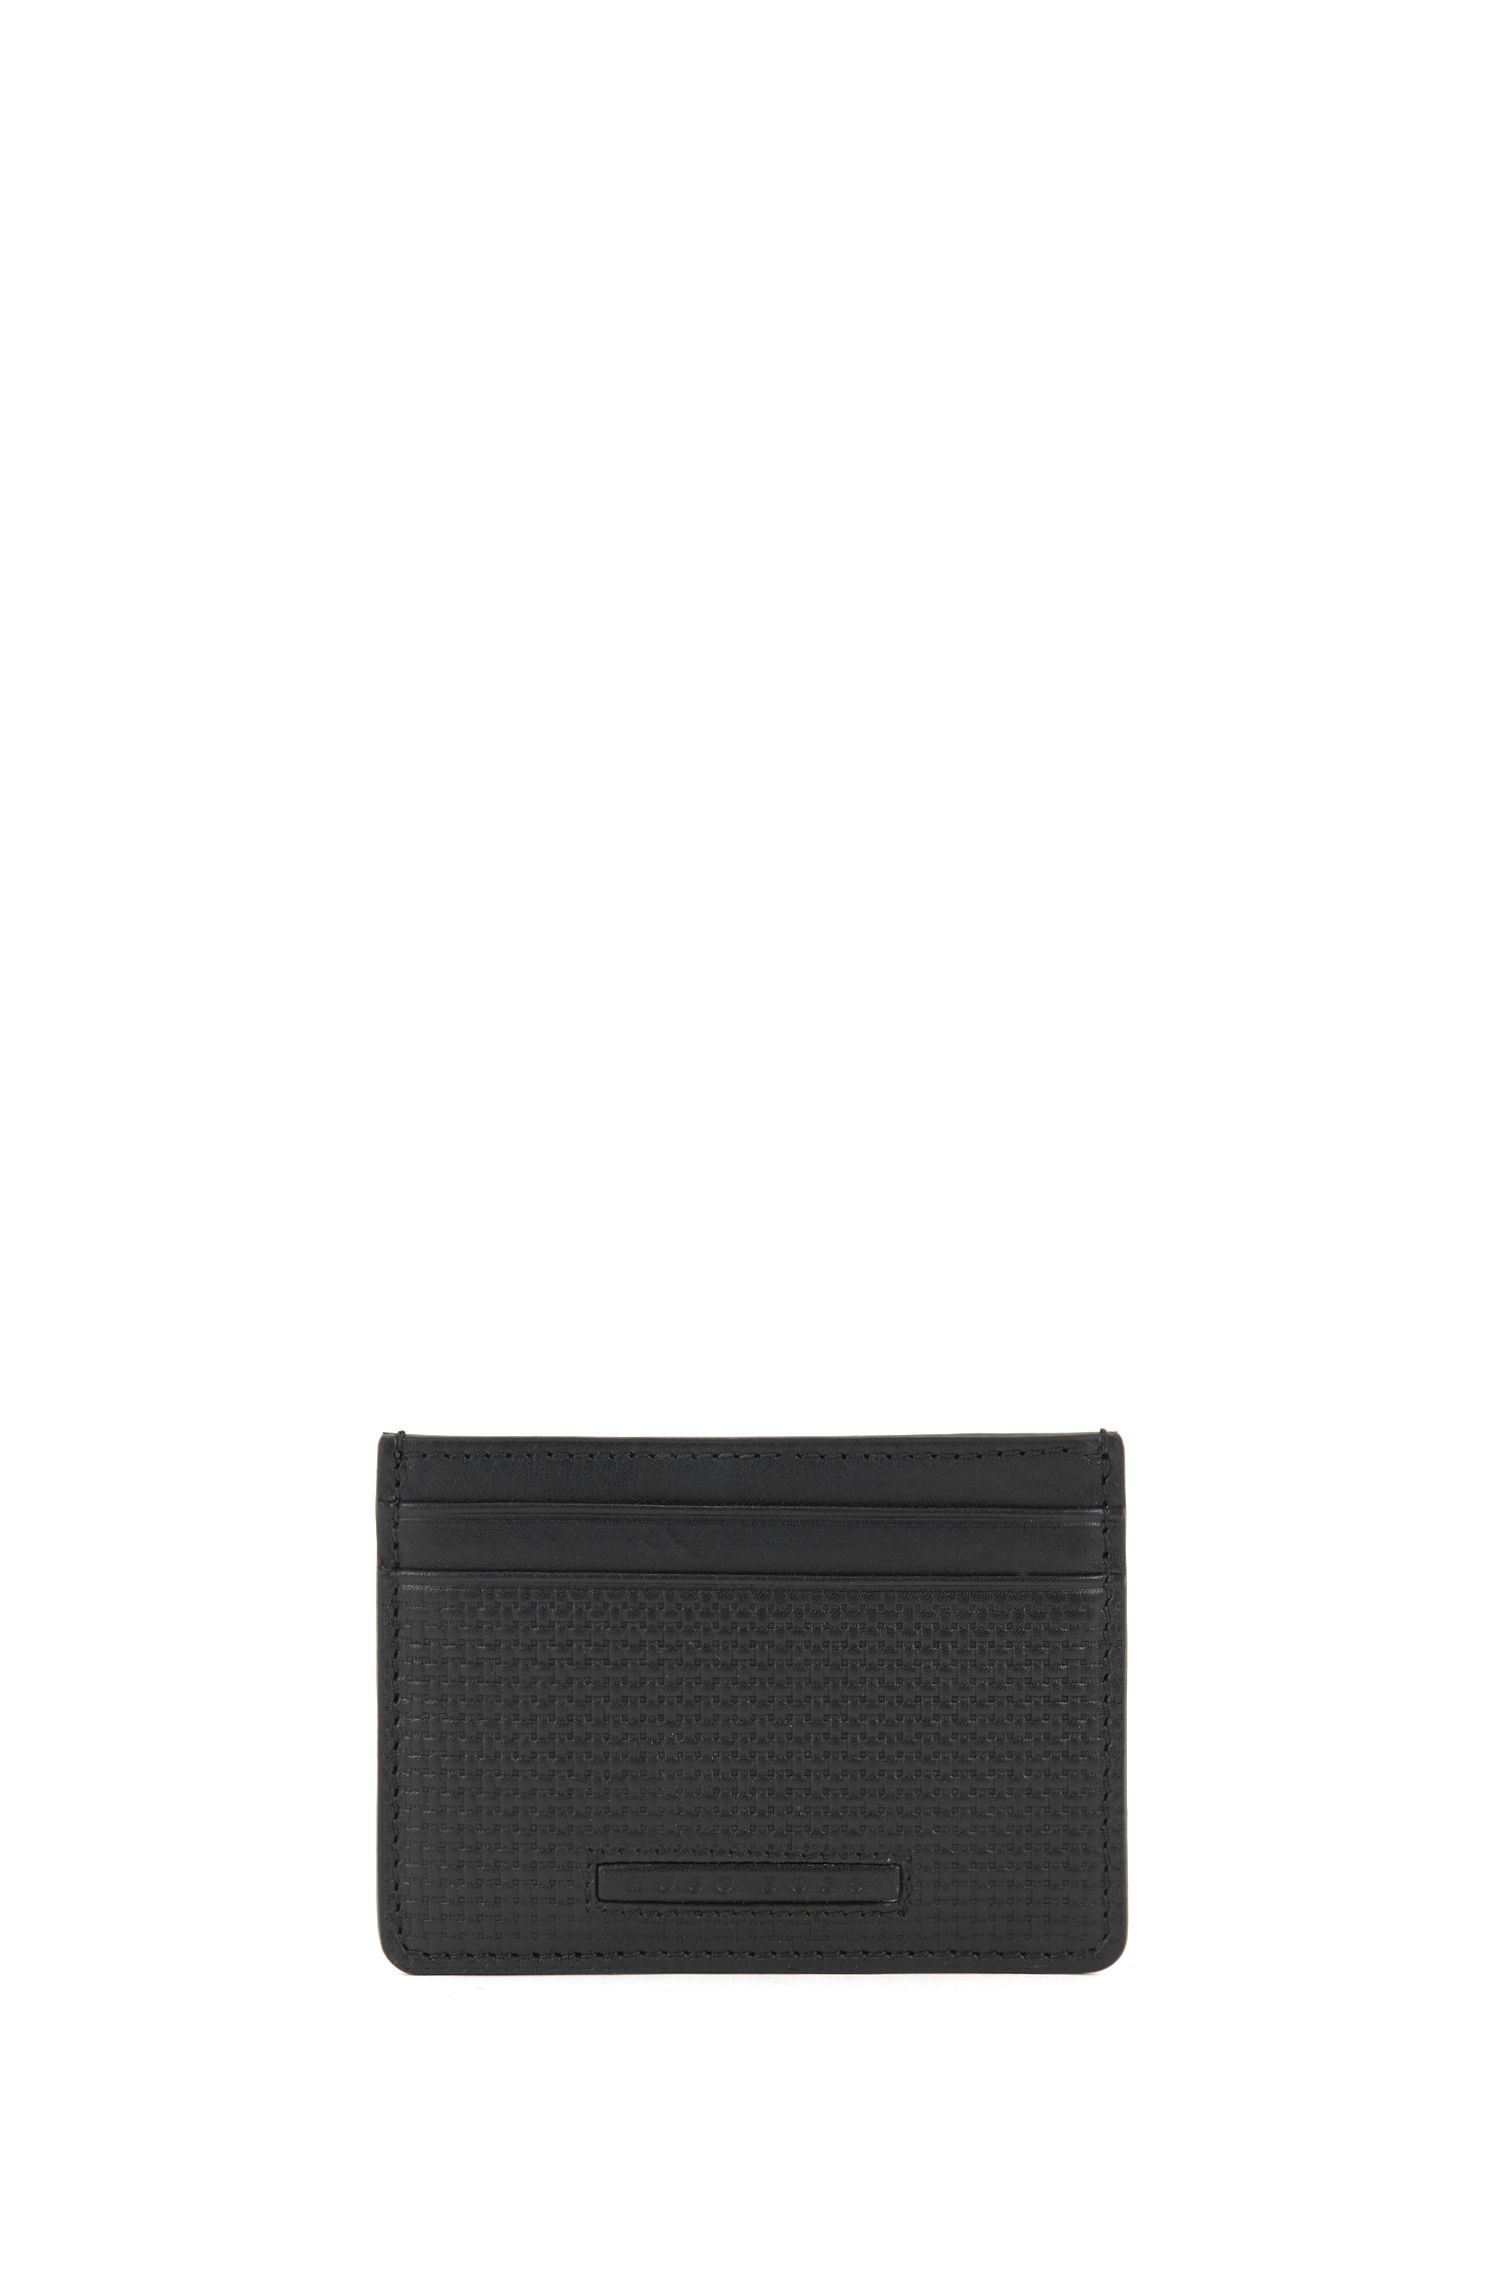 Bifold wallet and card holder gift set in embossed leather